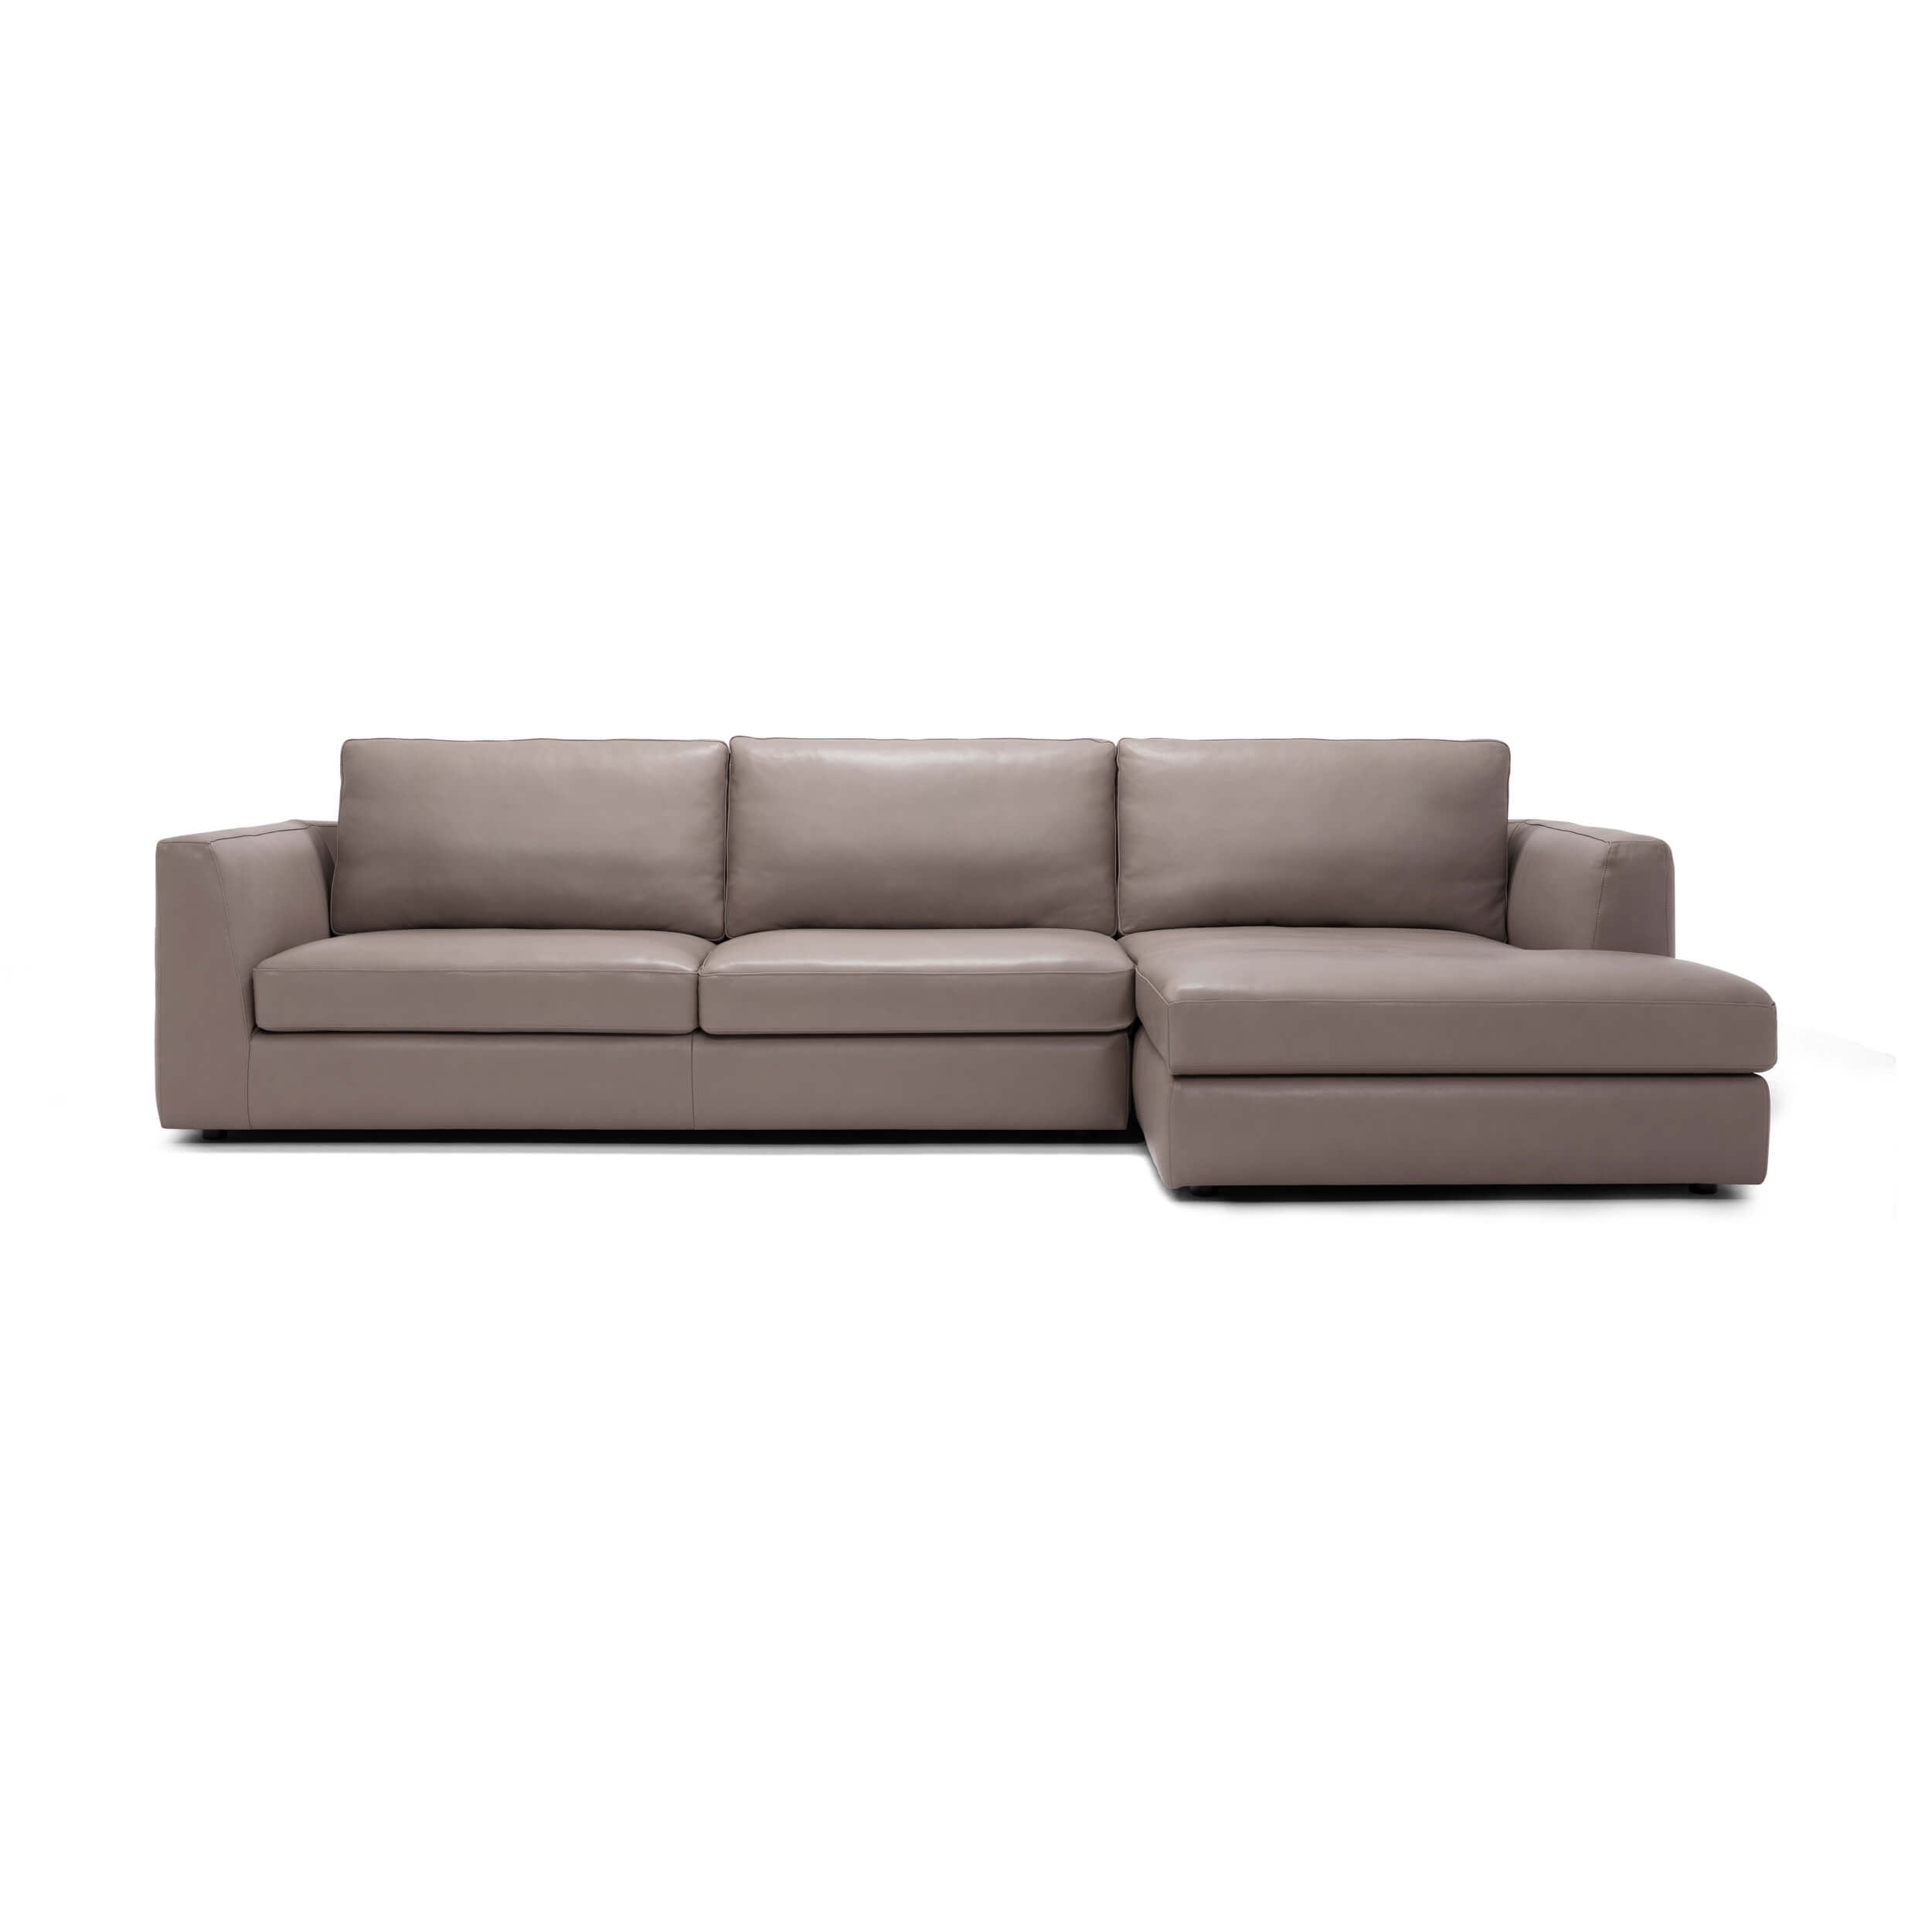 Cello 2-Piece Sectional Sofa With Chaise - Leather